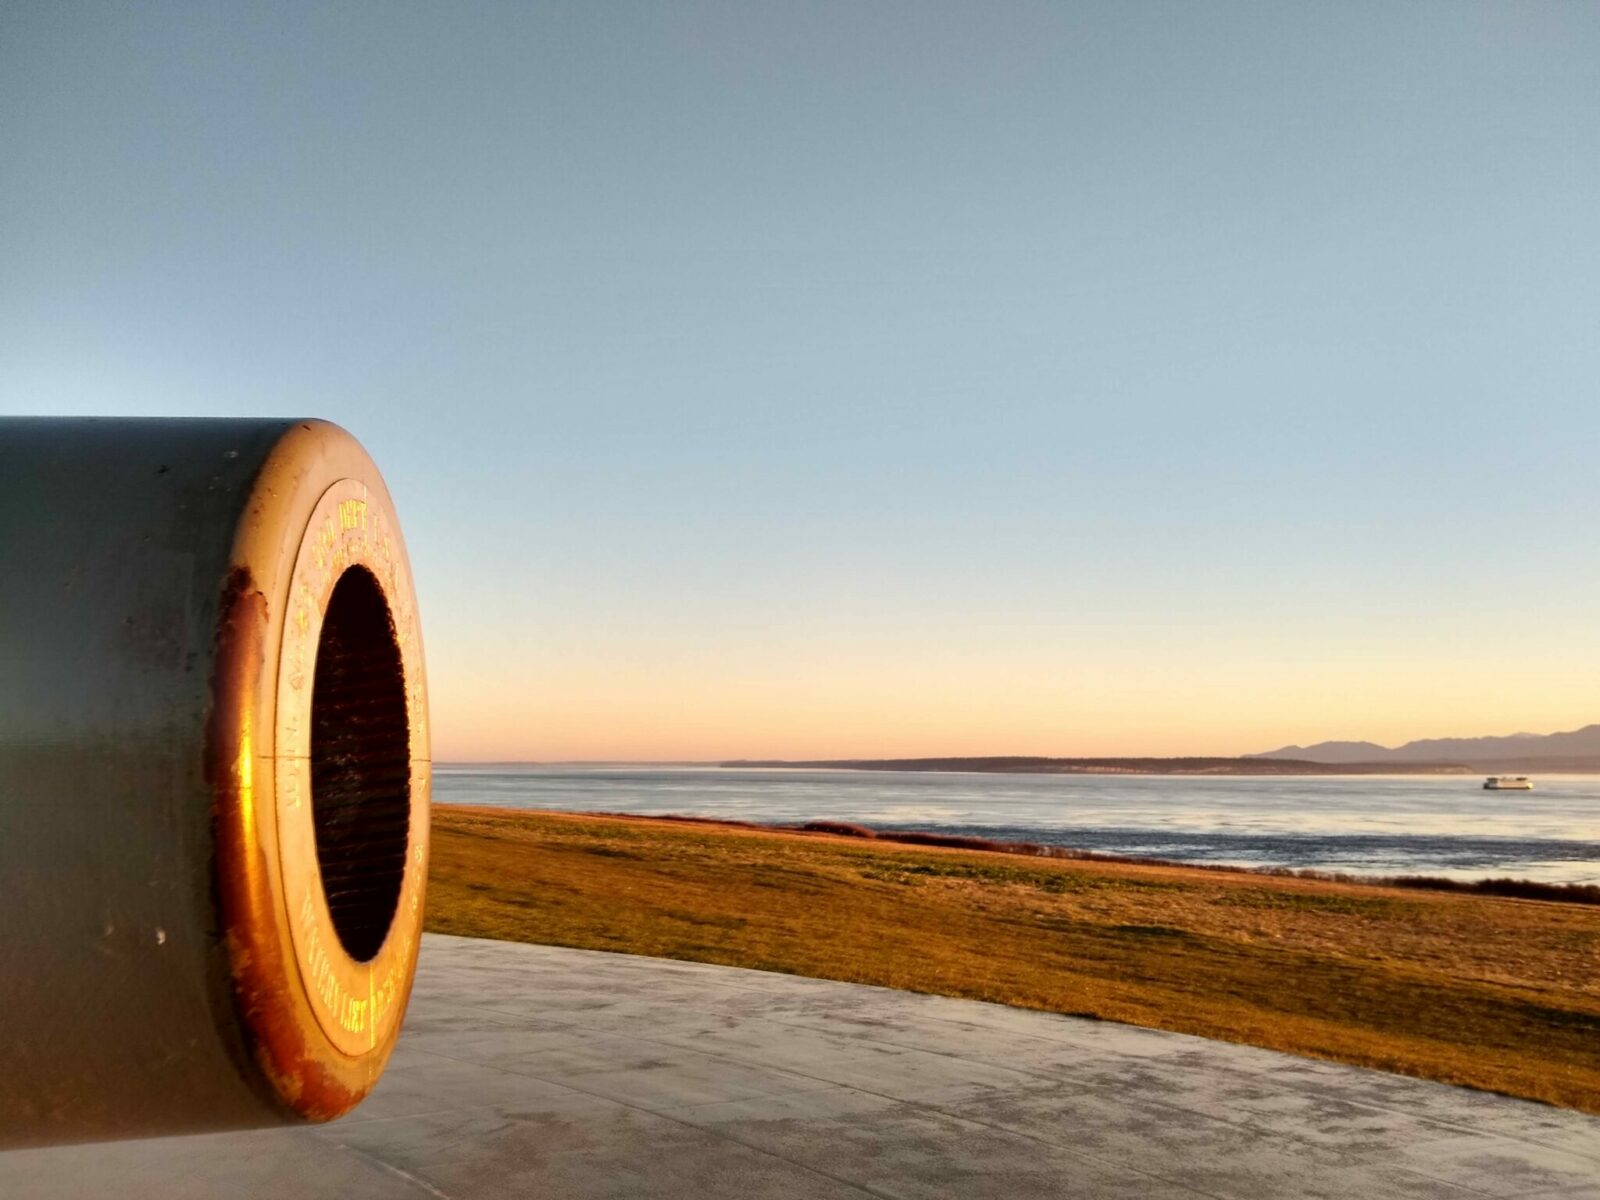 An old cannon at fort casey state park on whidbey island at sunset. There is a field and distant mountains and a ferry in the background